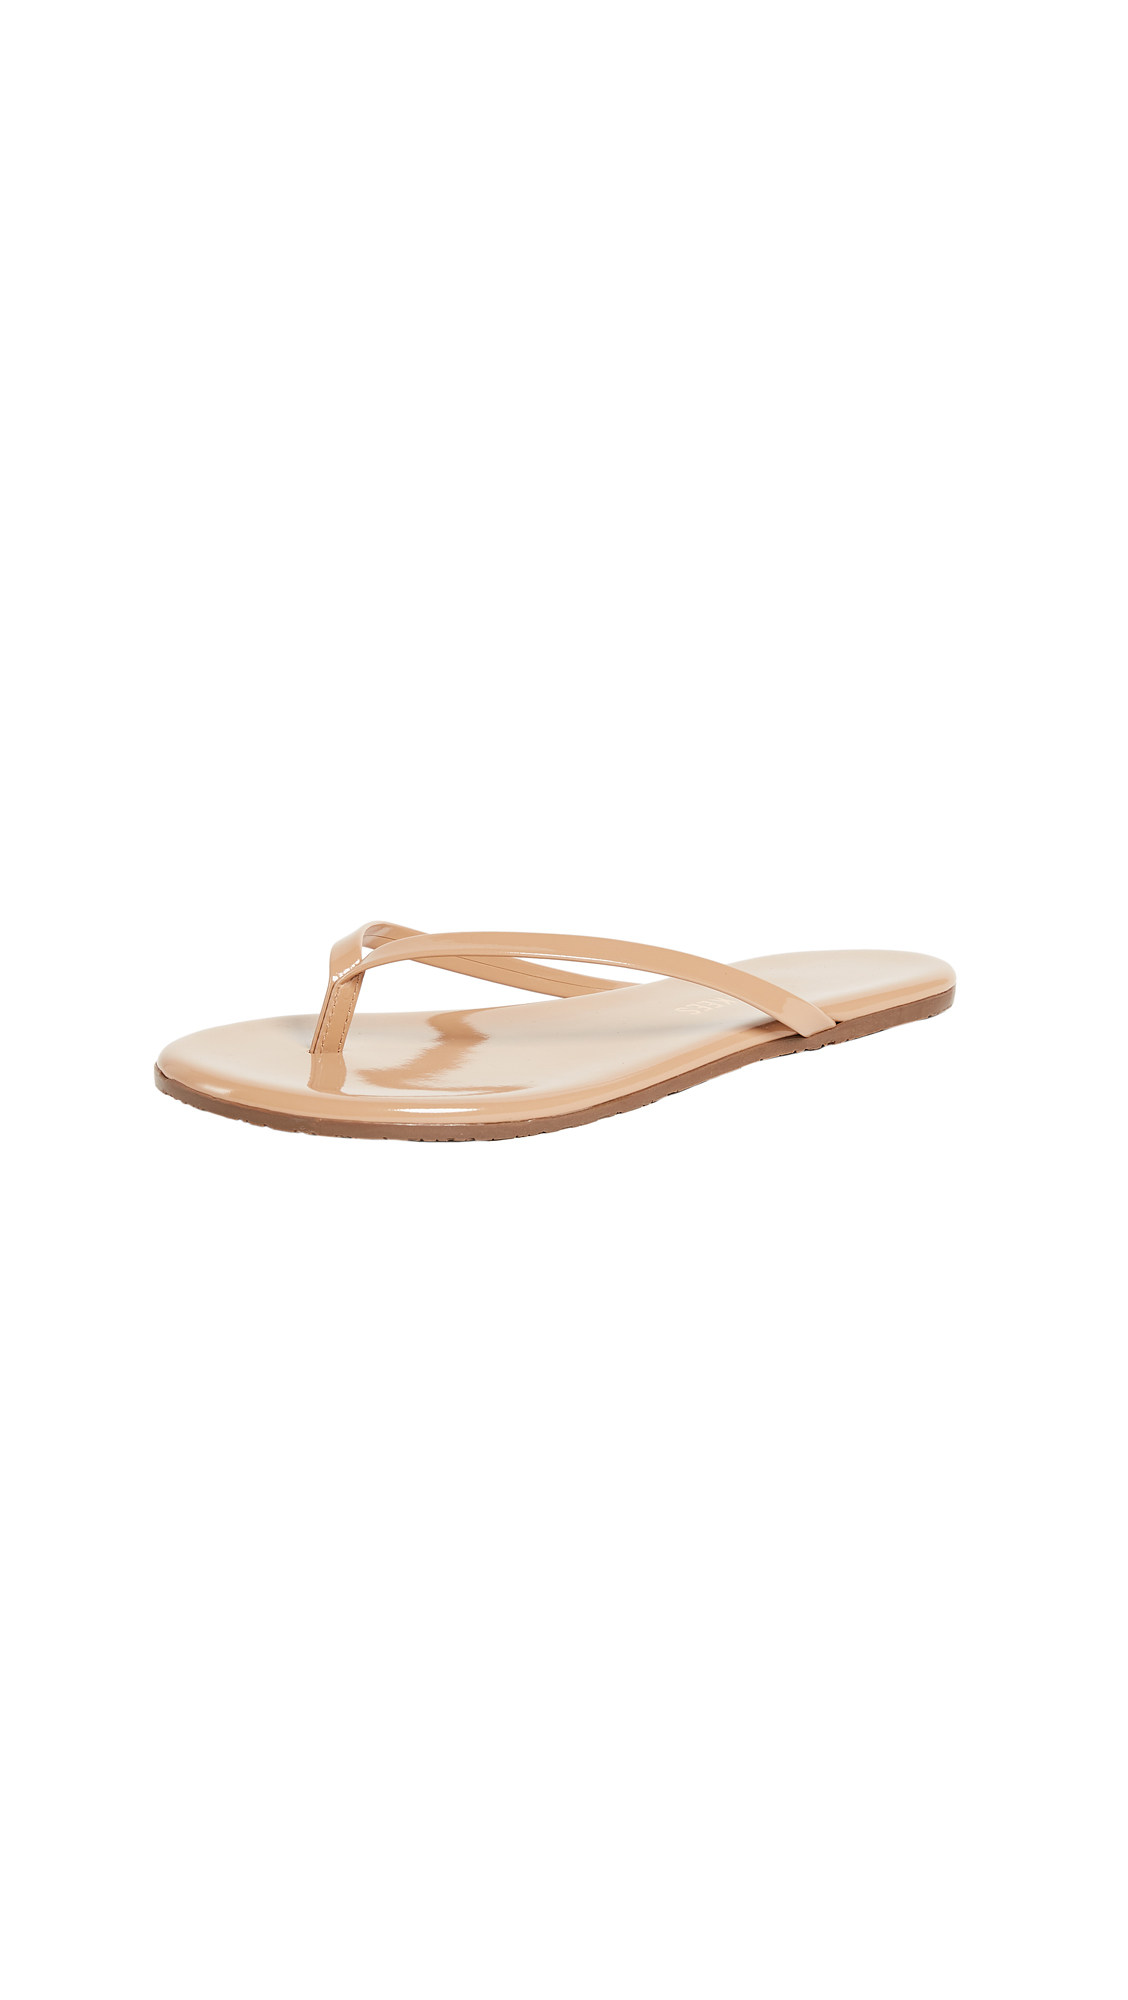 TKEES Foundations Glosses Flip Flops - Coco Butter